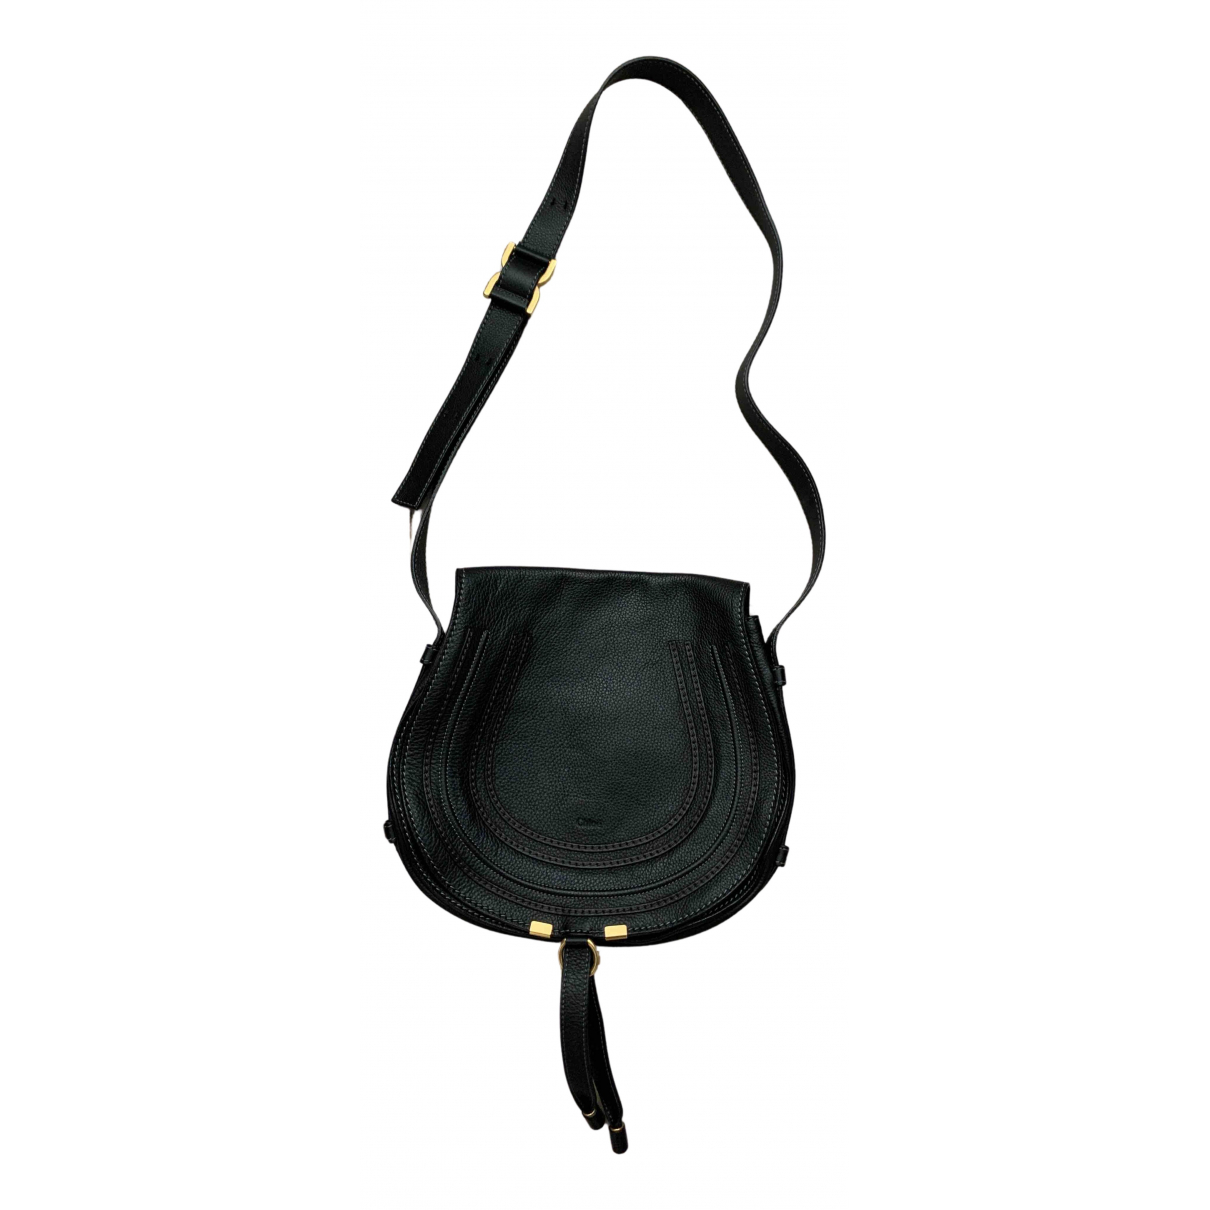 Chloé Marcie Black Leather handbag for Women N